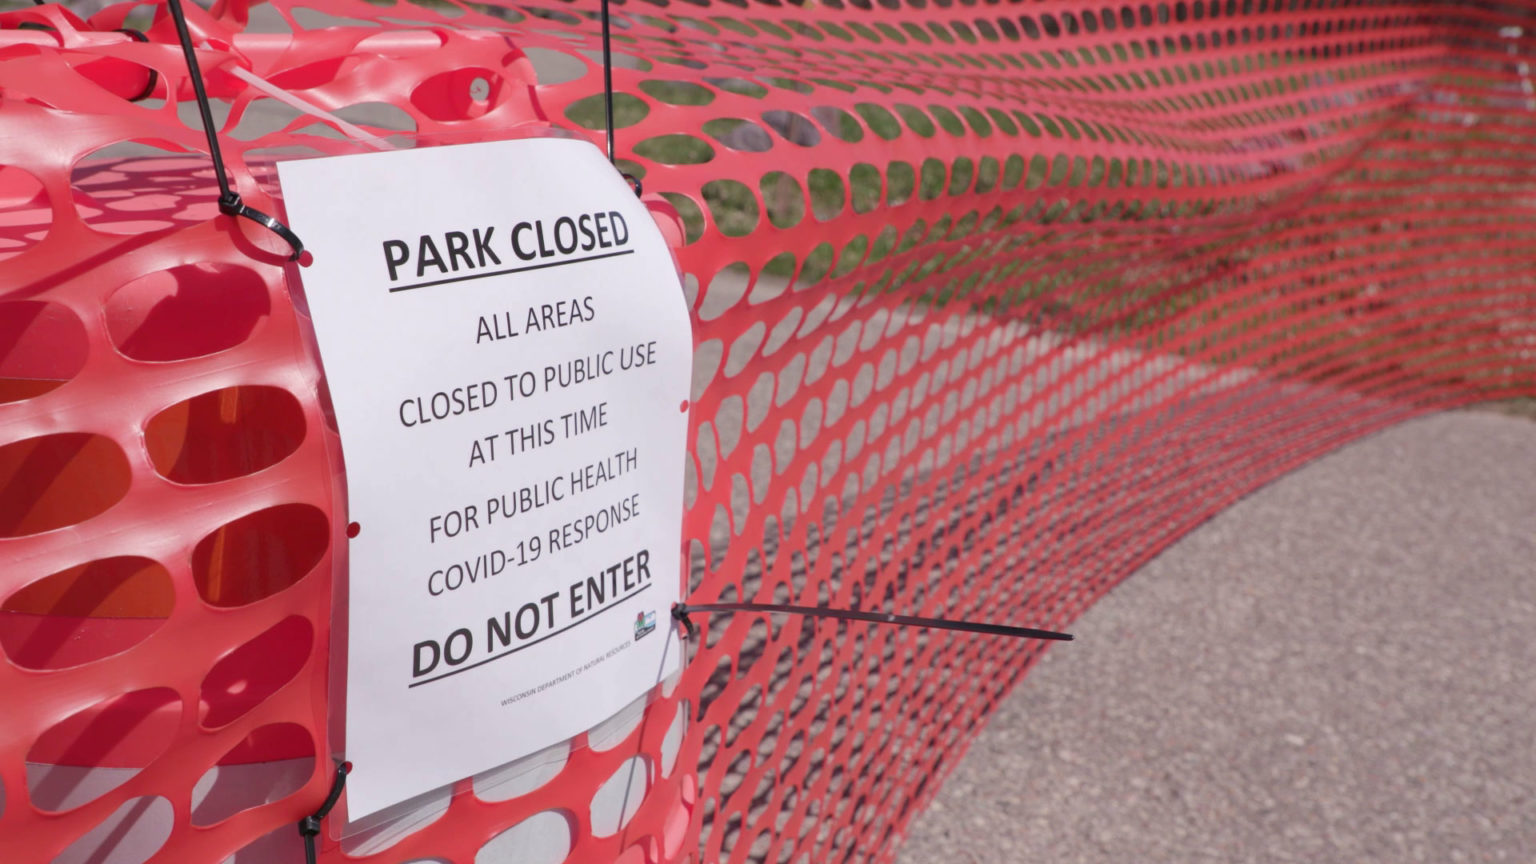 A sign showing state parks closed due to the COVID-19 outbreak April 10, 2020.